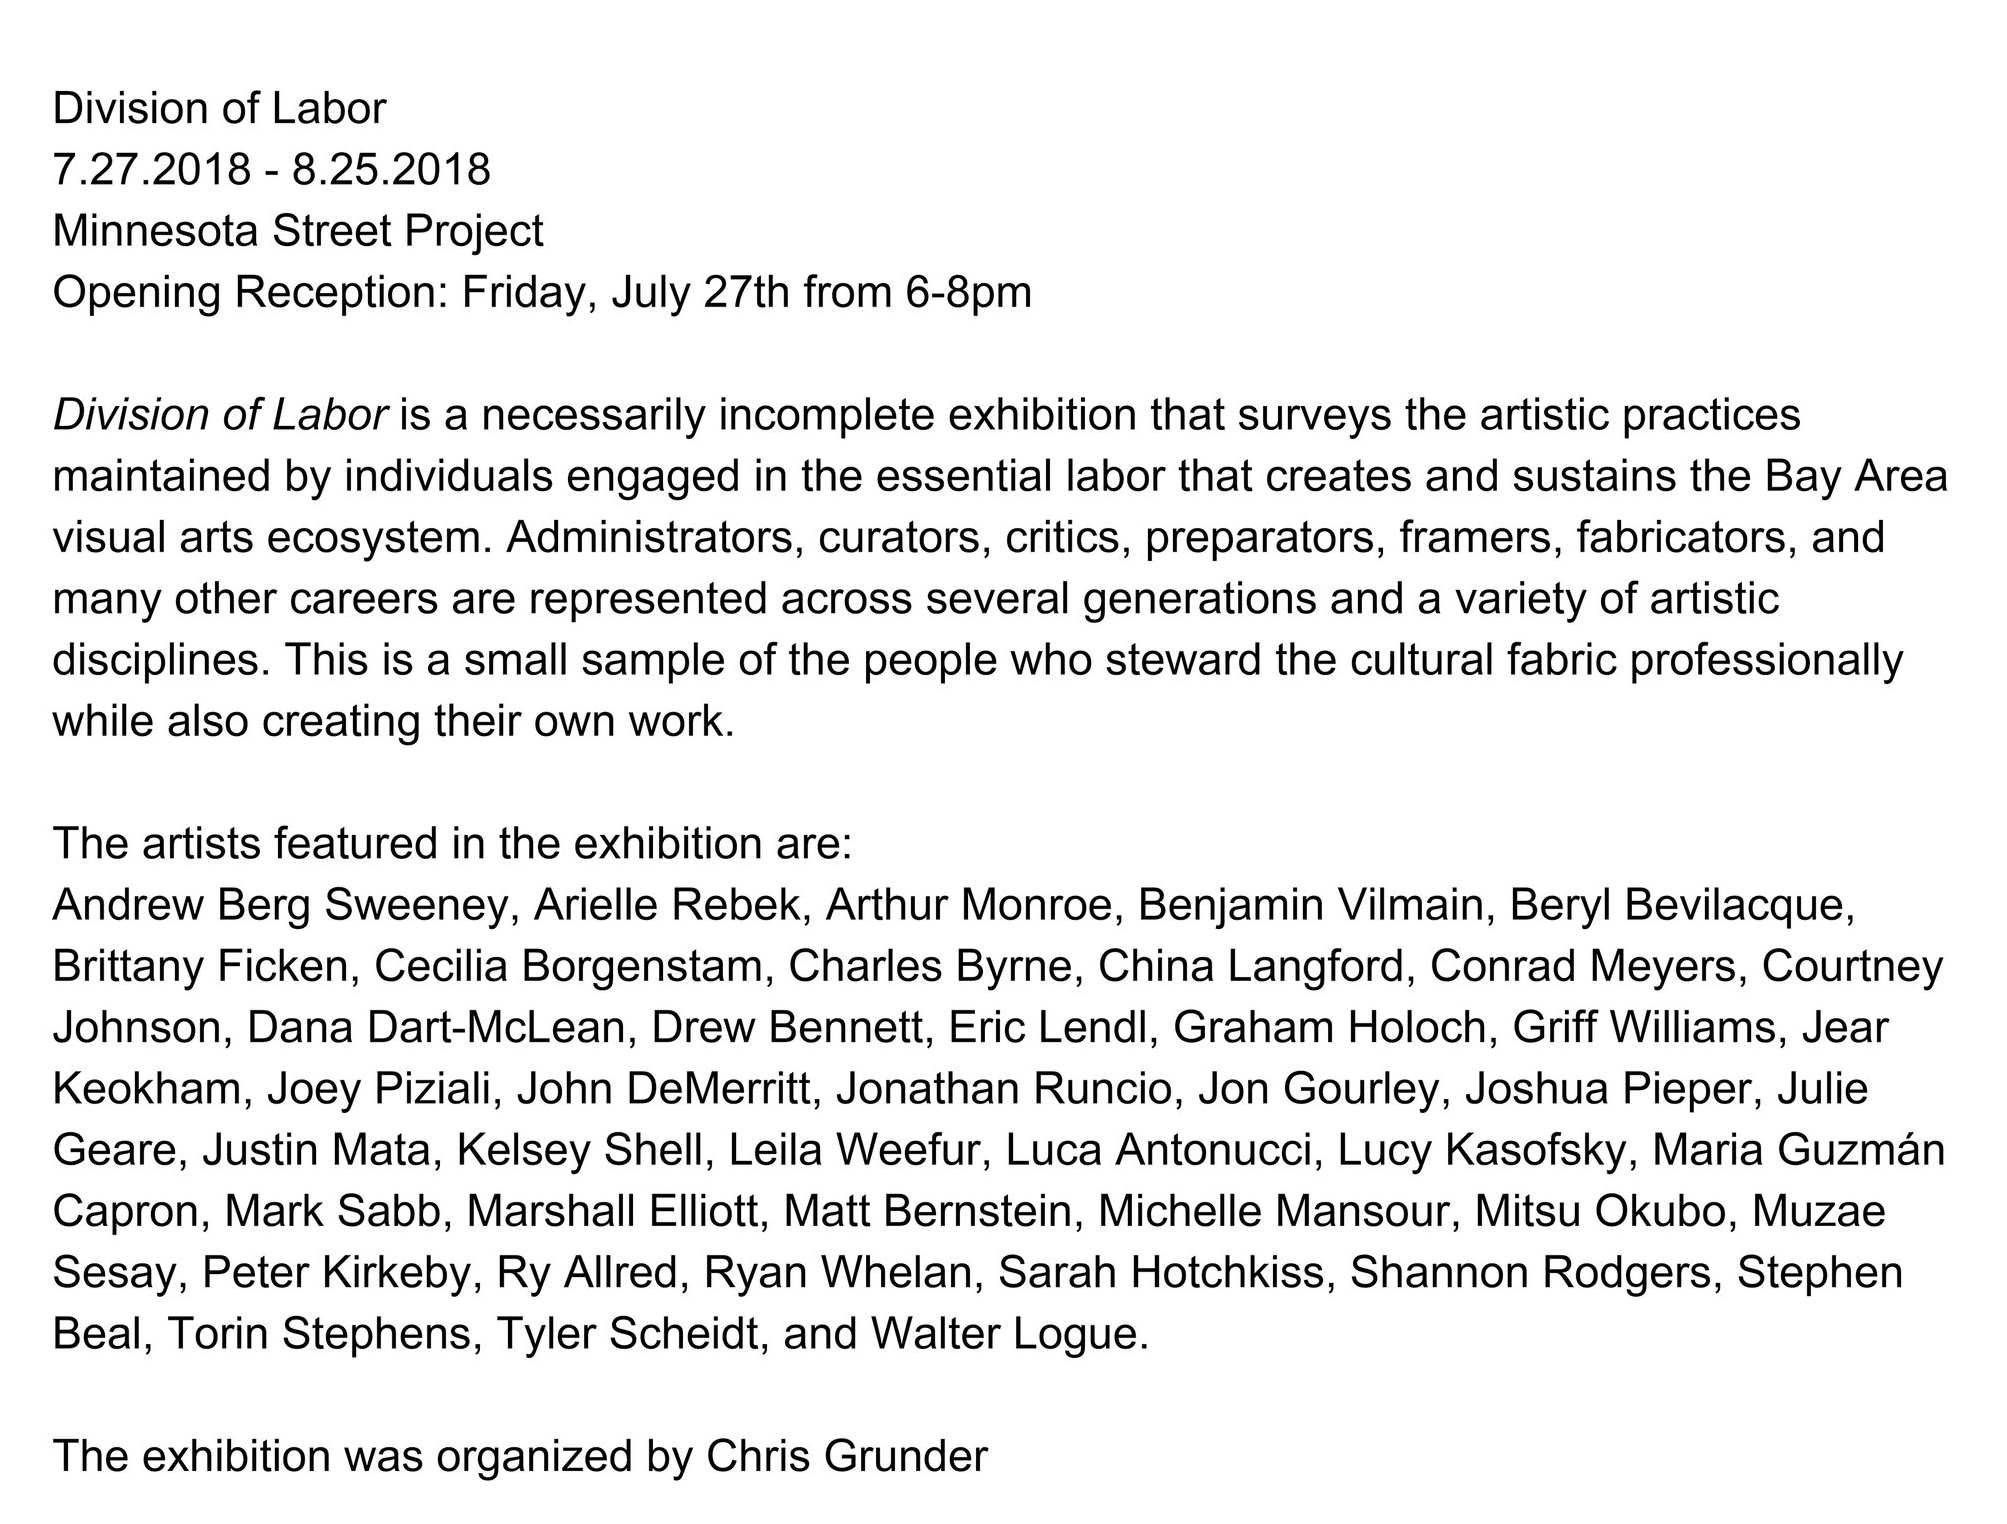 Division of Labor    Organized by Chris Grunder 27 July-25 August, 2018   Opening Reception:  Friday, 27 July // 6-8pm   Minnesota Street Project   1275 Minnesota St San Francisco, CA 94107